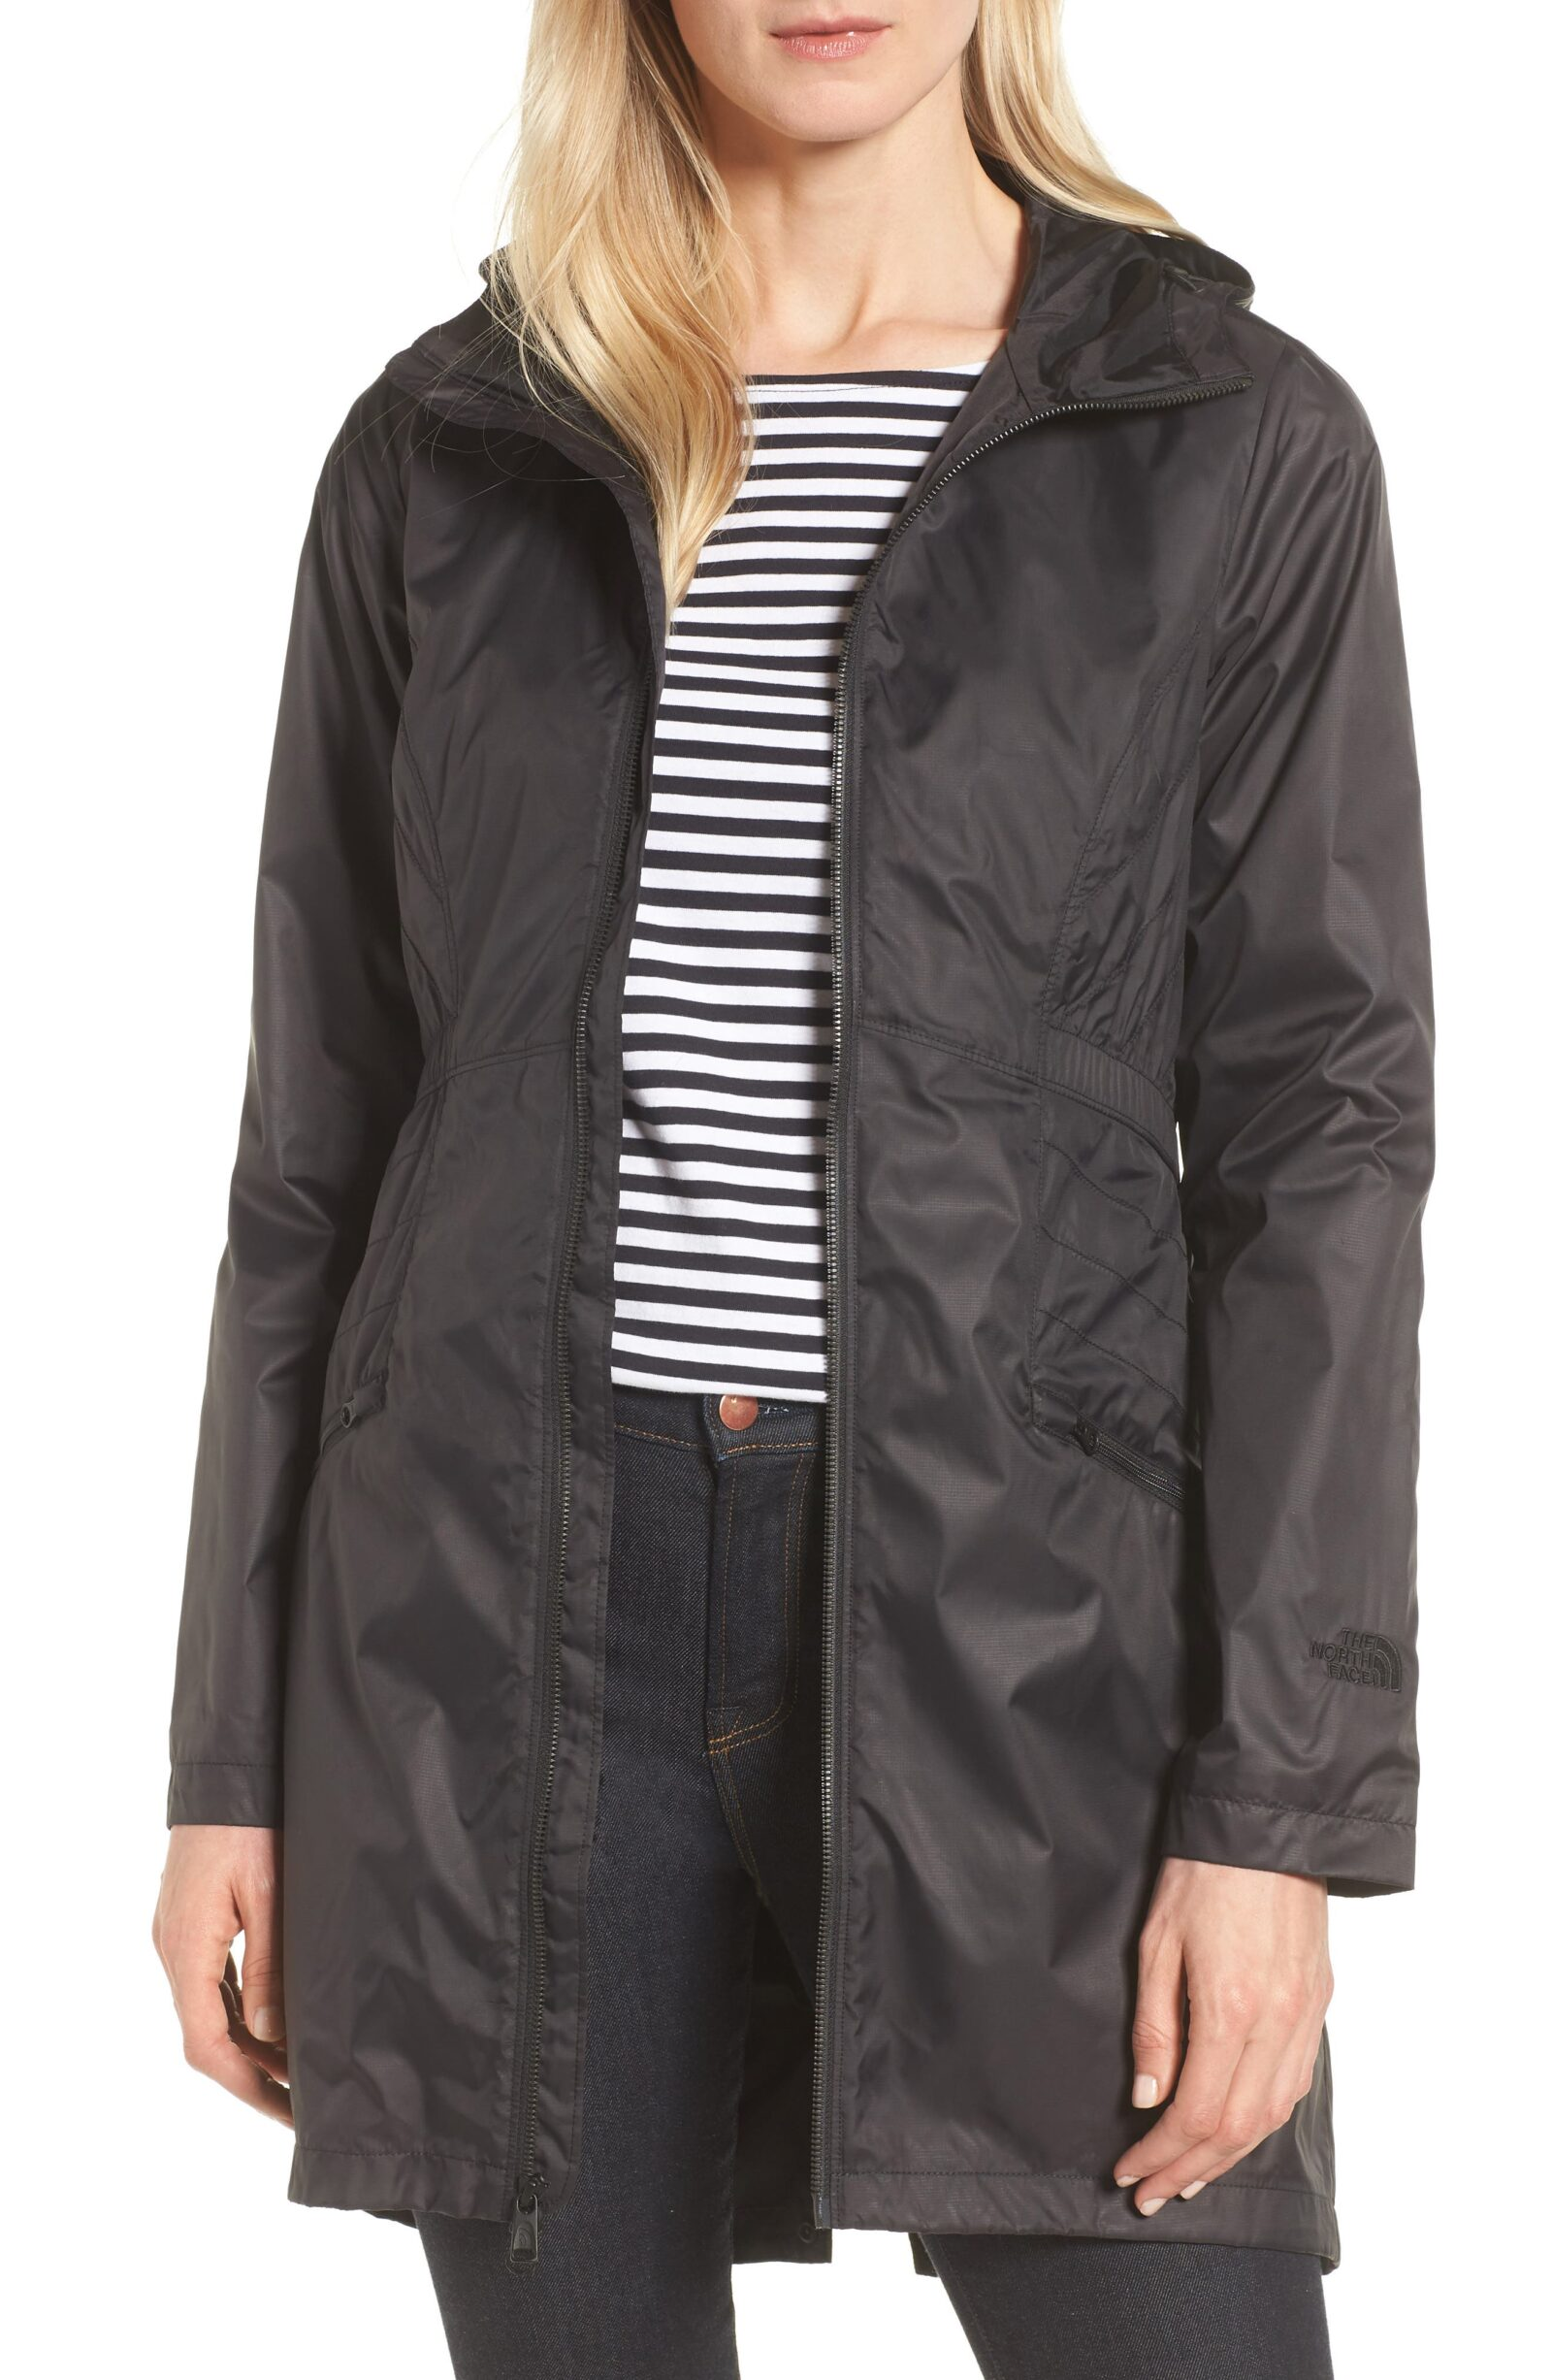 transitional weather coats and jackets